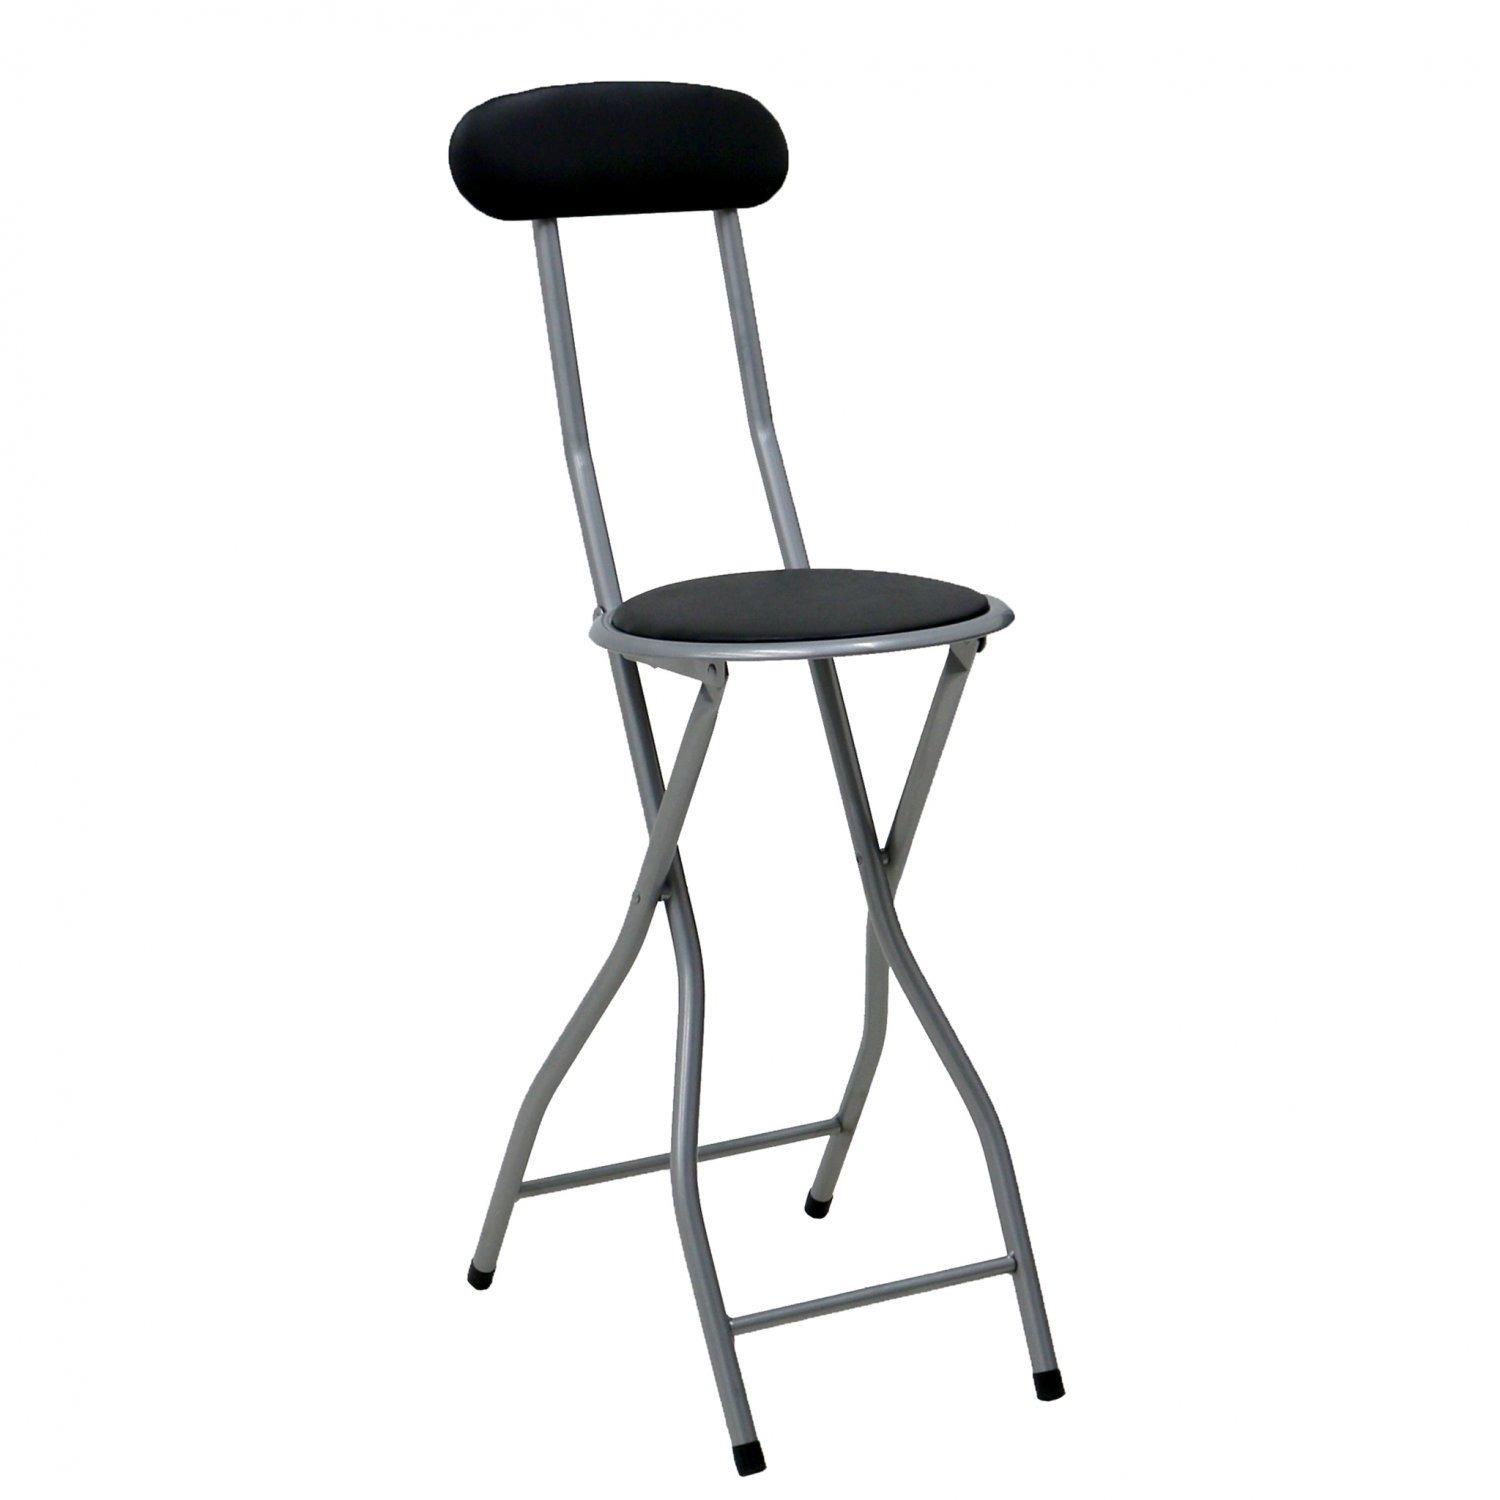 Black Padded Folding High Chair Breakfast Kitchen Bar Stool Seat